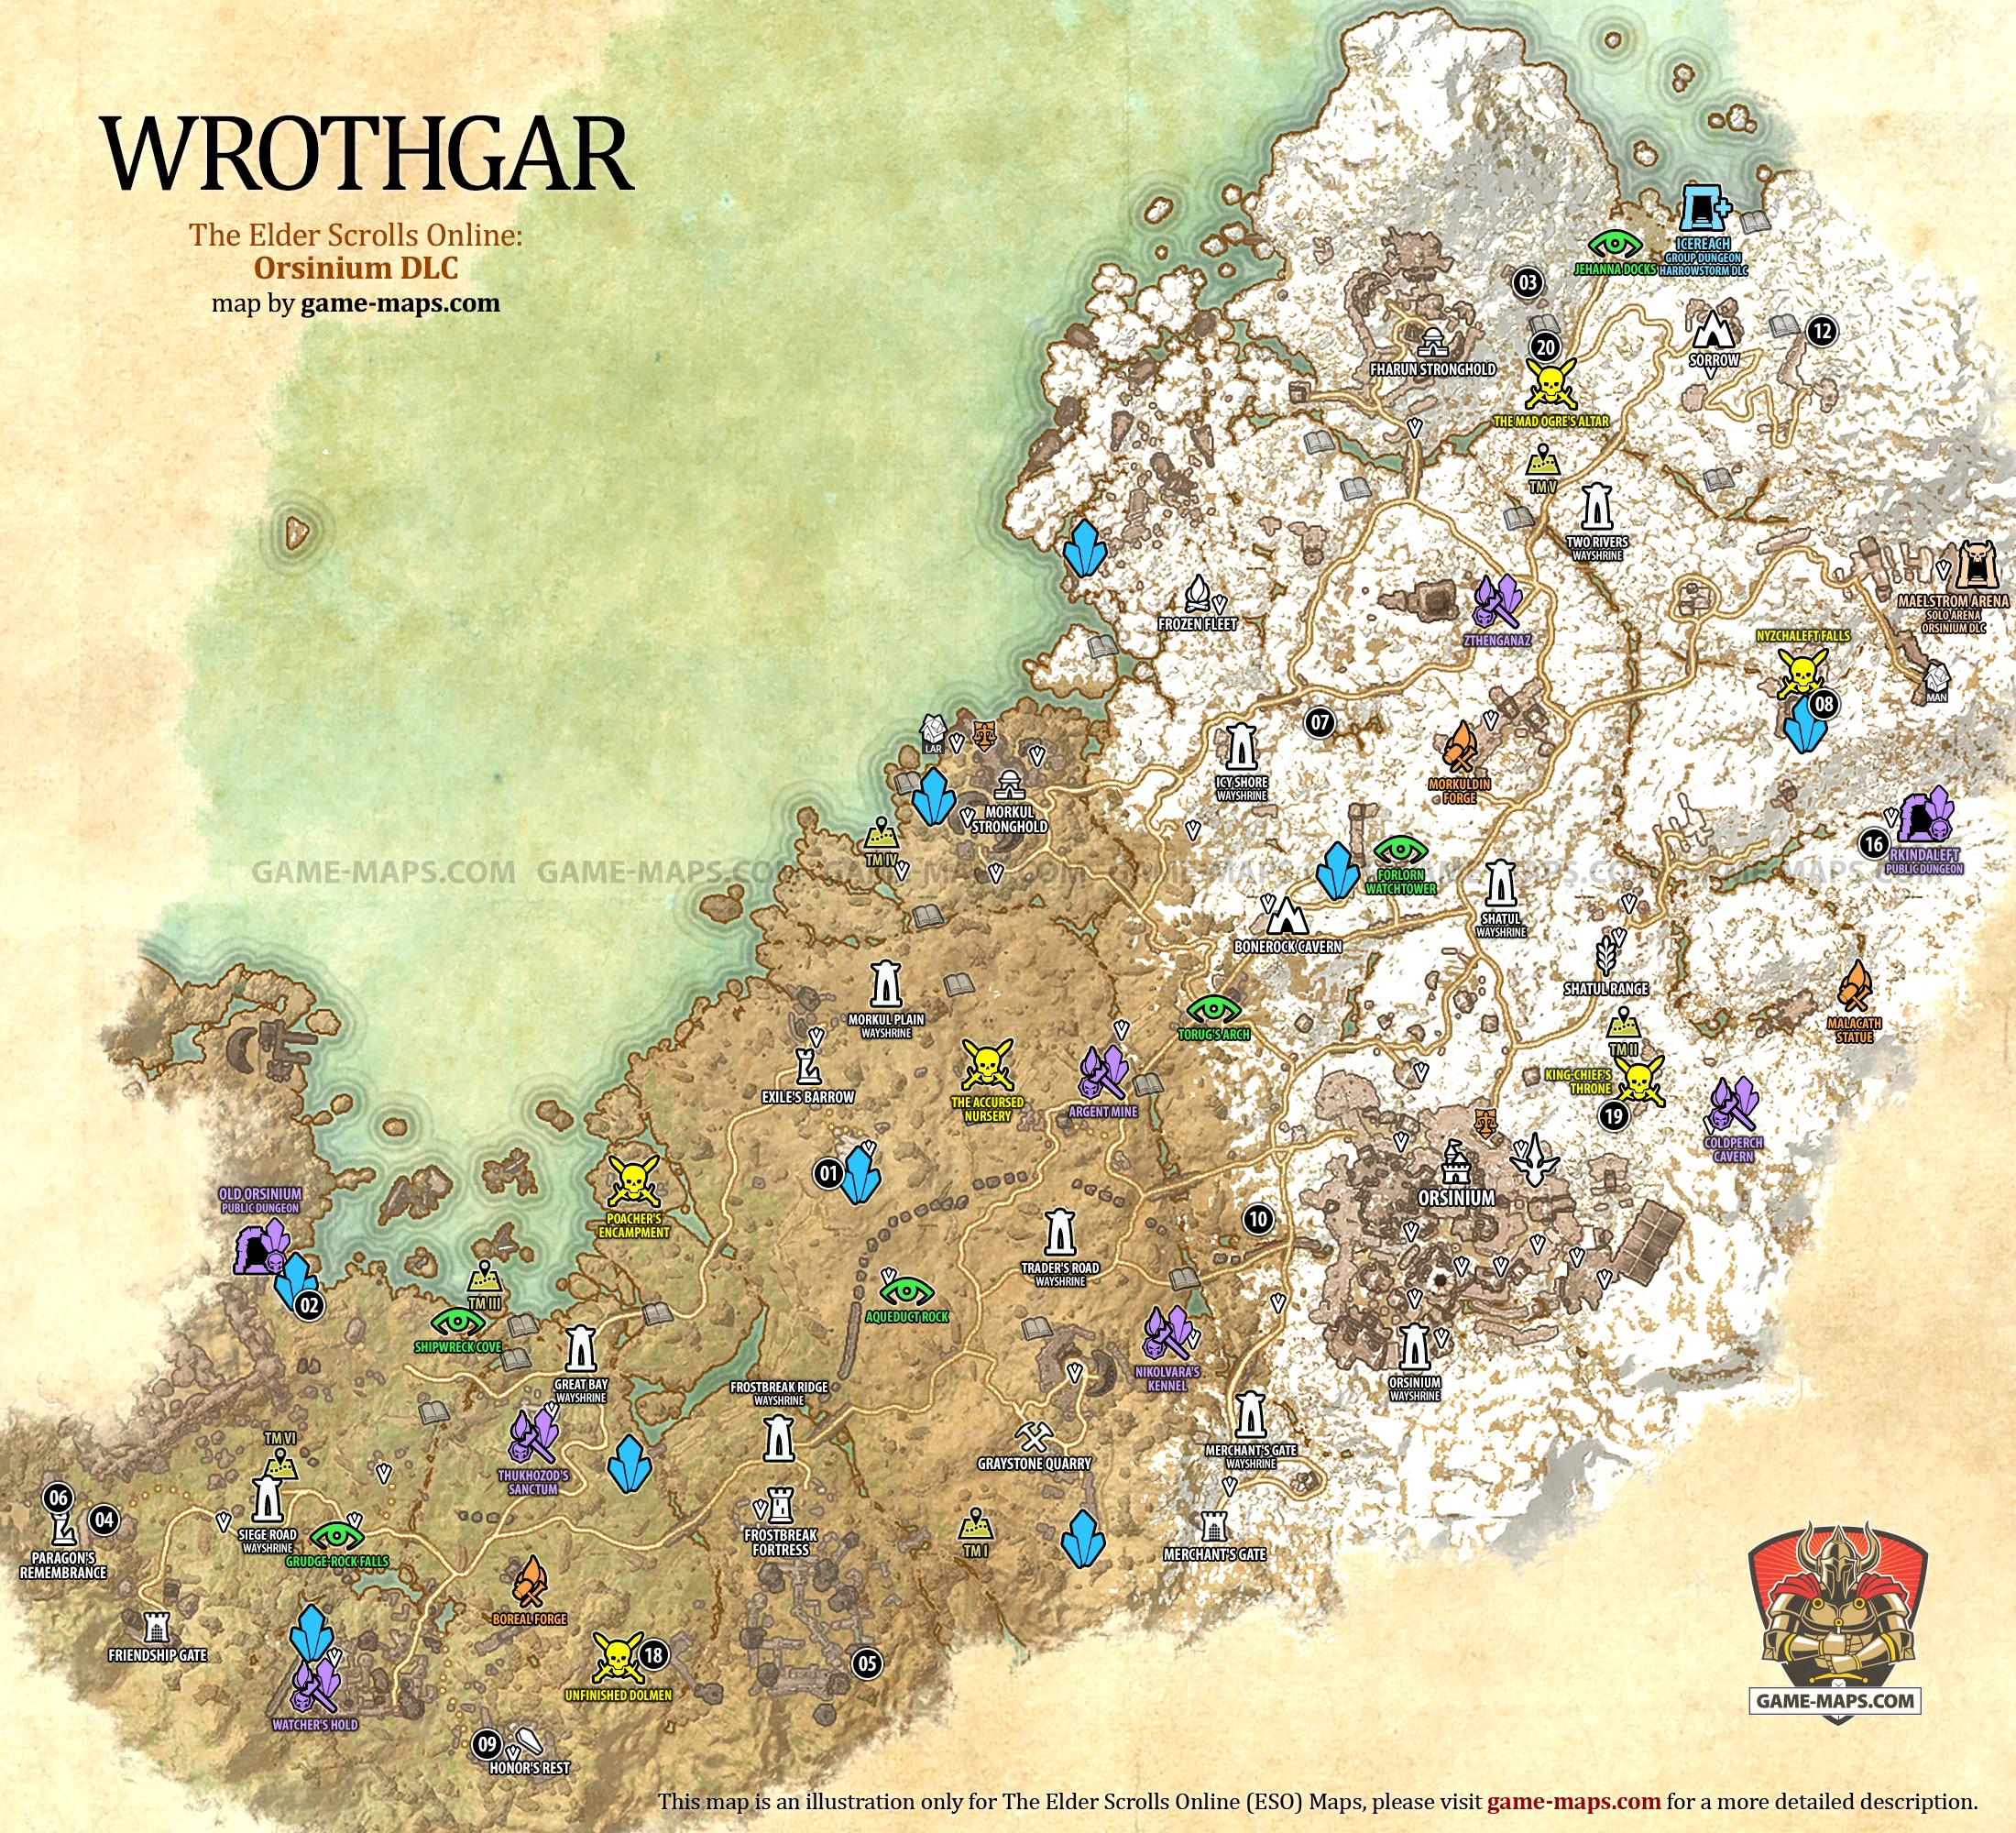 Wrothgar Map - The Elder Scrolls Online | game-maps.com